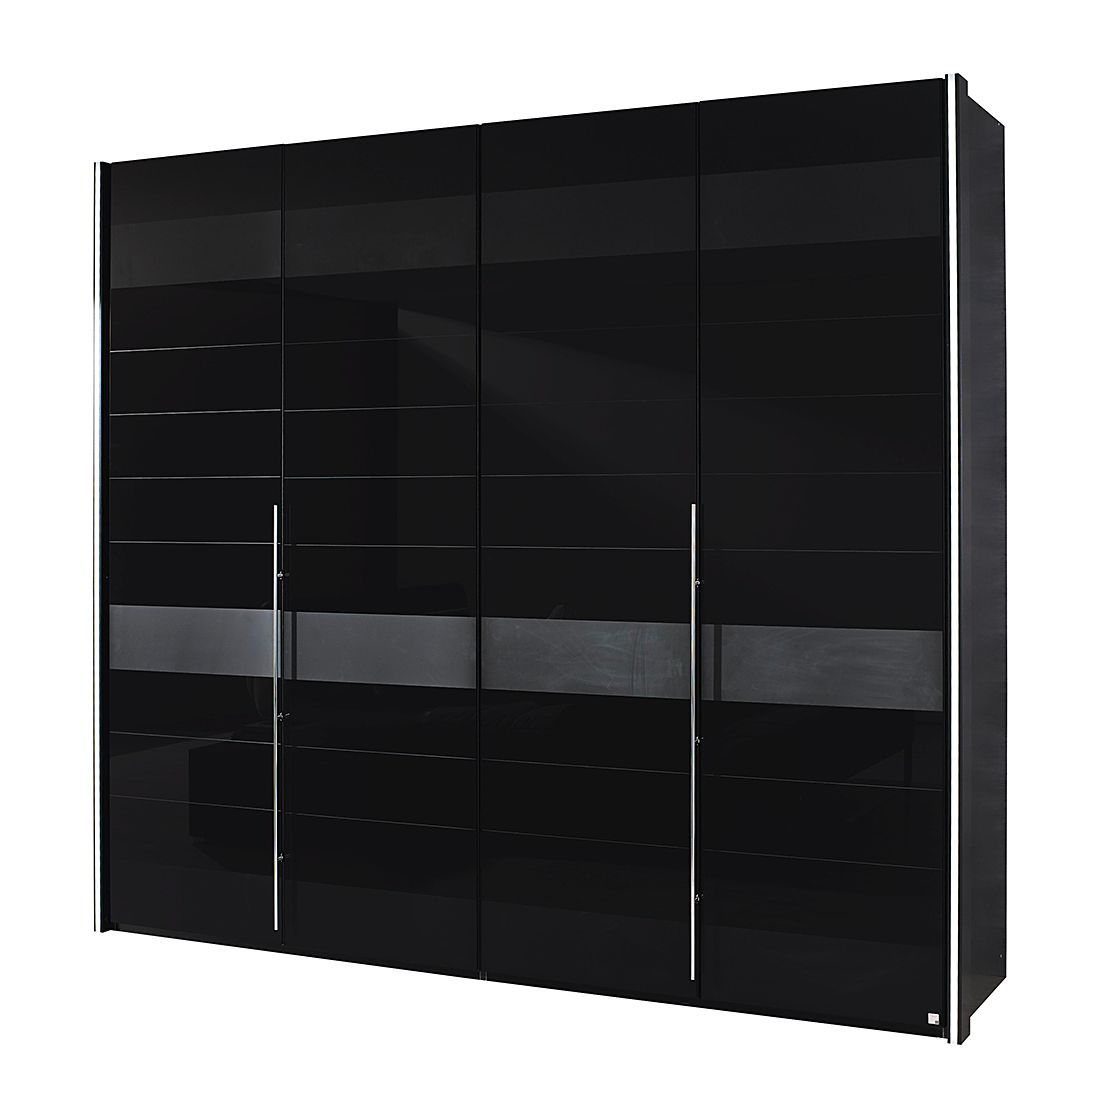 dreht renschrank nala glasfront schwarz absetzungen in grau matt schrankbreite 181 cm mit. Black Bedroom Furniture Sets. Home Design Ideas